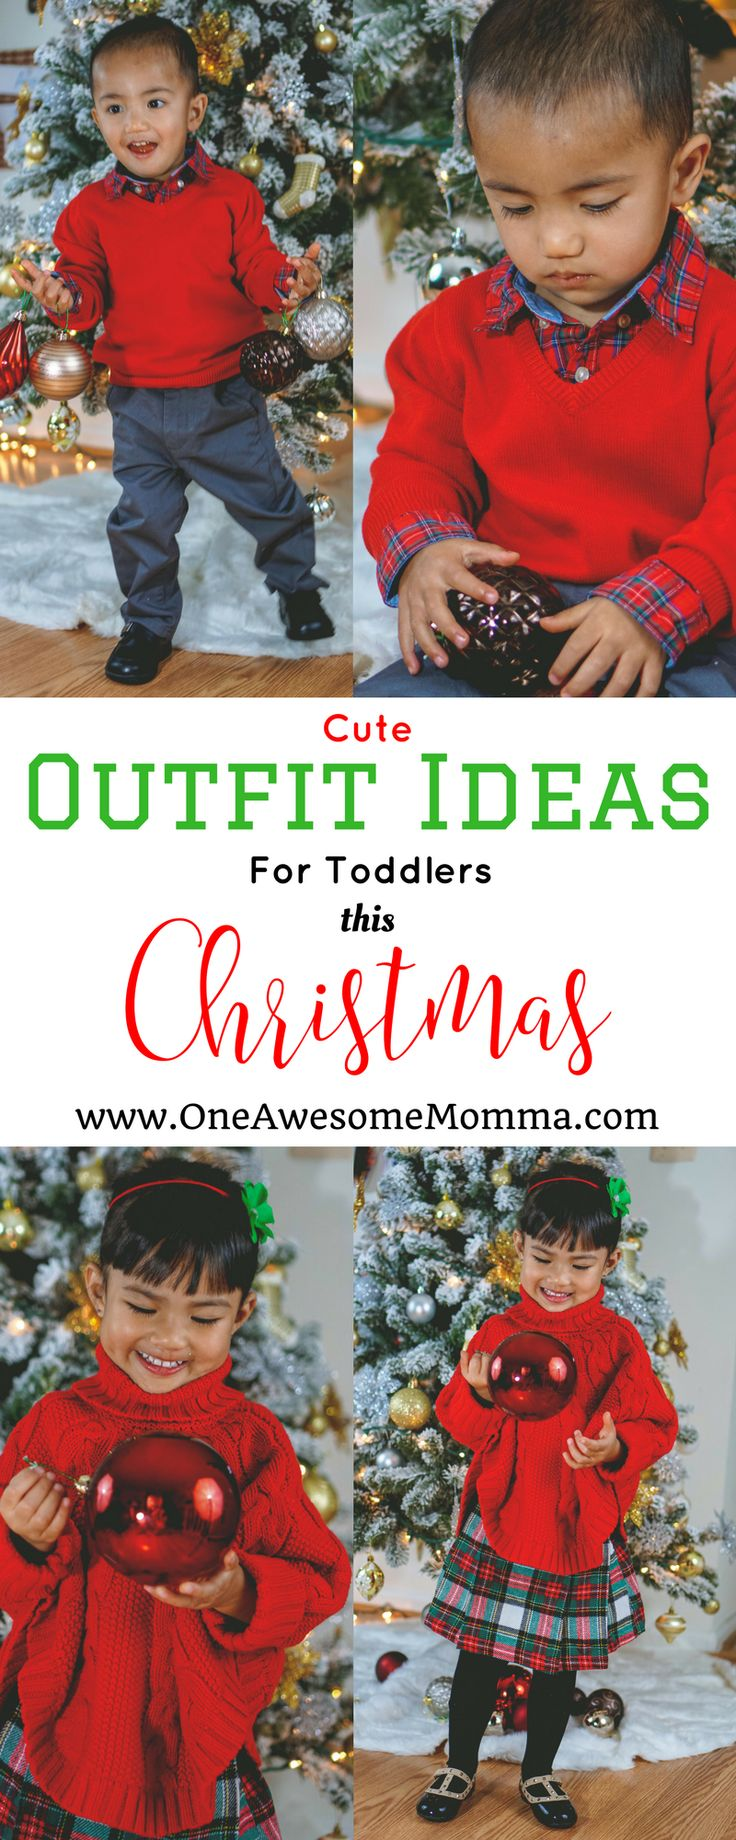 [ad] Planning Christmas outfit for your kids? Check out these cute toddler outfit ideas from @cartersbabykids! #lovecarters #kidsstyle #toddlerstyle #holidaystyle #holidayfashion | christmas outfit toddler boy | christmas outfit toddler girl | christmas outfit | christmas outfit ideas | christmas outfit ideas for kids | holiday outfits christmas | holiday outfits toddler boy | holiday outfits toddler girl | festive outfit | festive outfits christmas | carters outfits